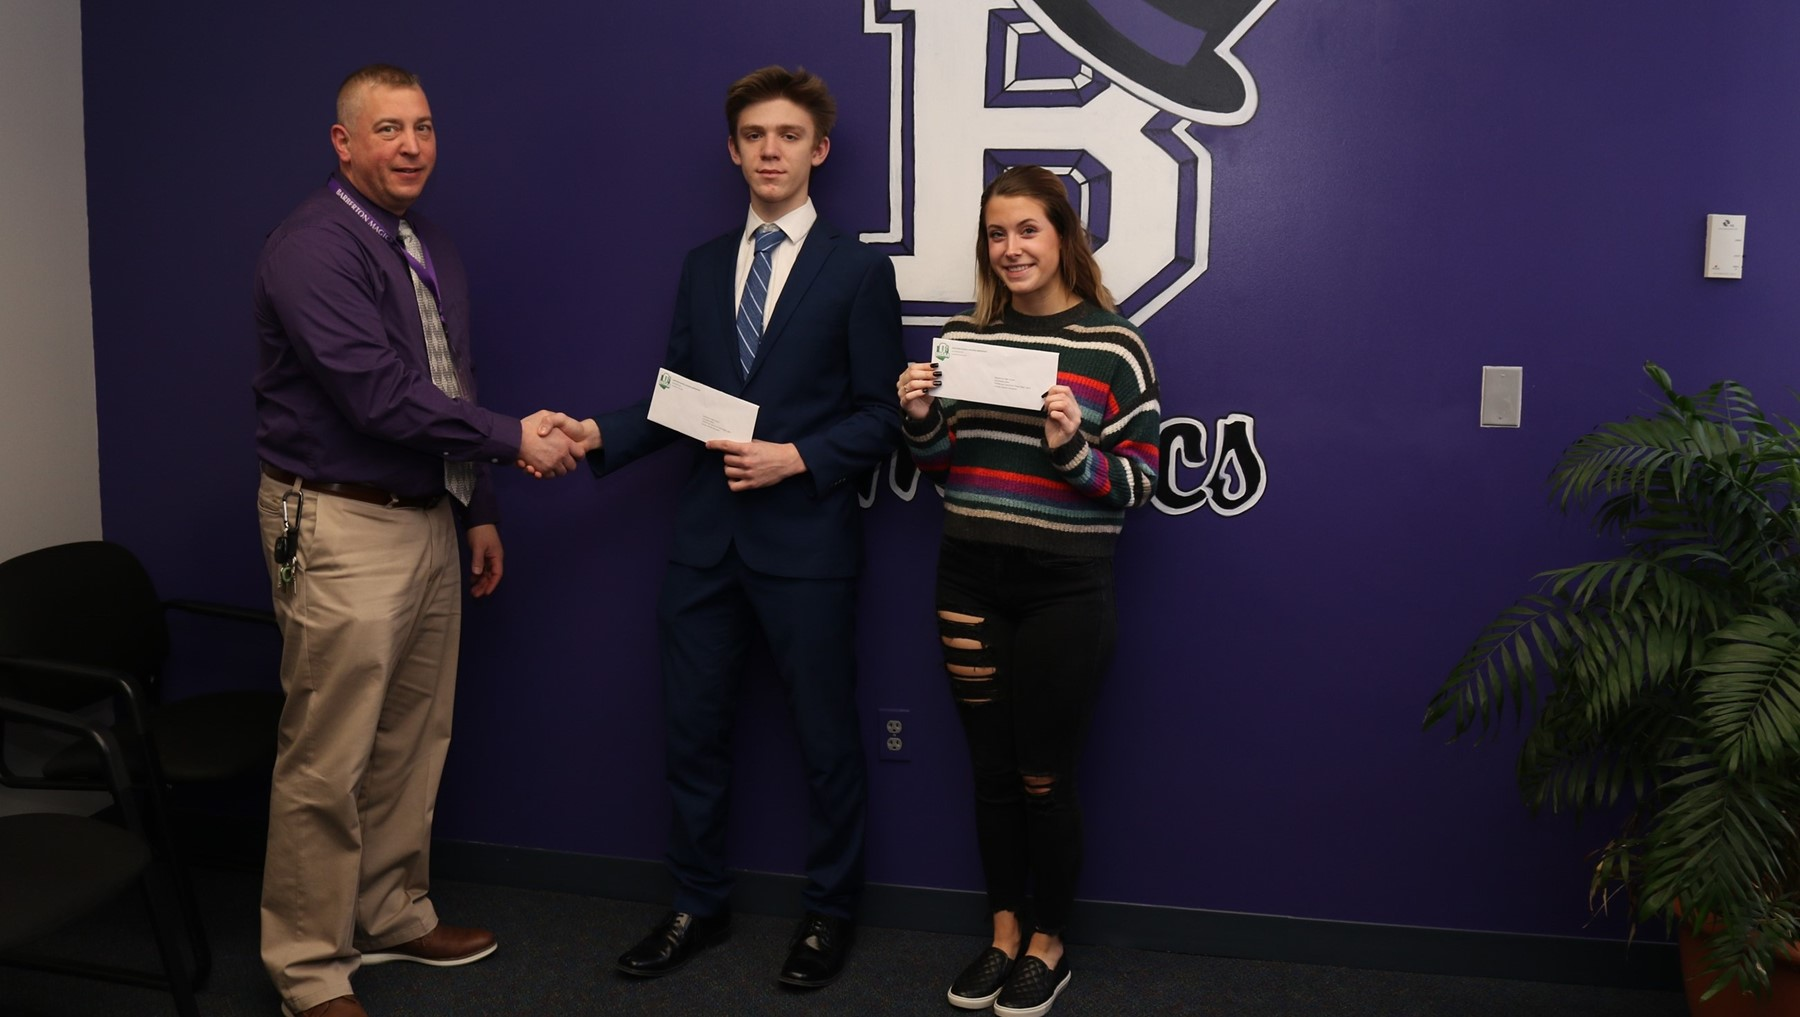 The Spectrum News Scholar Athlete Program recognizes exceptional public high school student athletes with academic scholarship awards of $1,000 each for use towards college expenses. Congratulations to Barberton High School Seniors Justin Alkire and Amelia Sebe for being named 2020 Spectrum News Scholar Athletes.